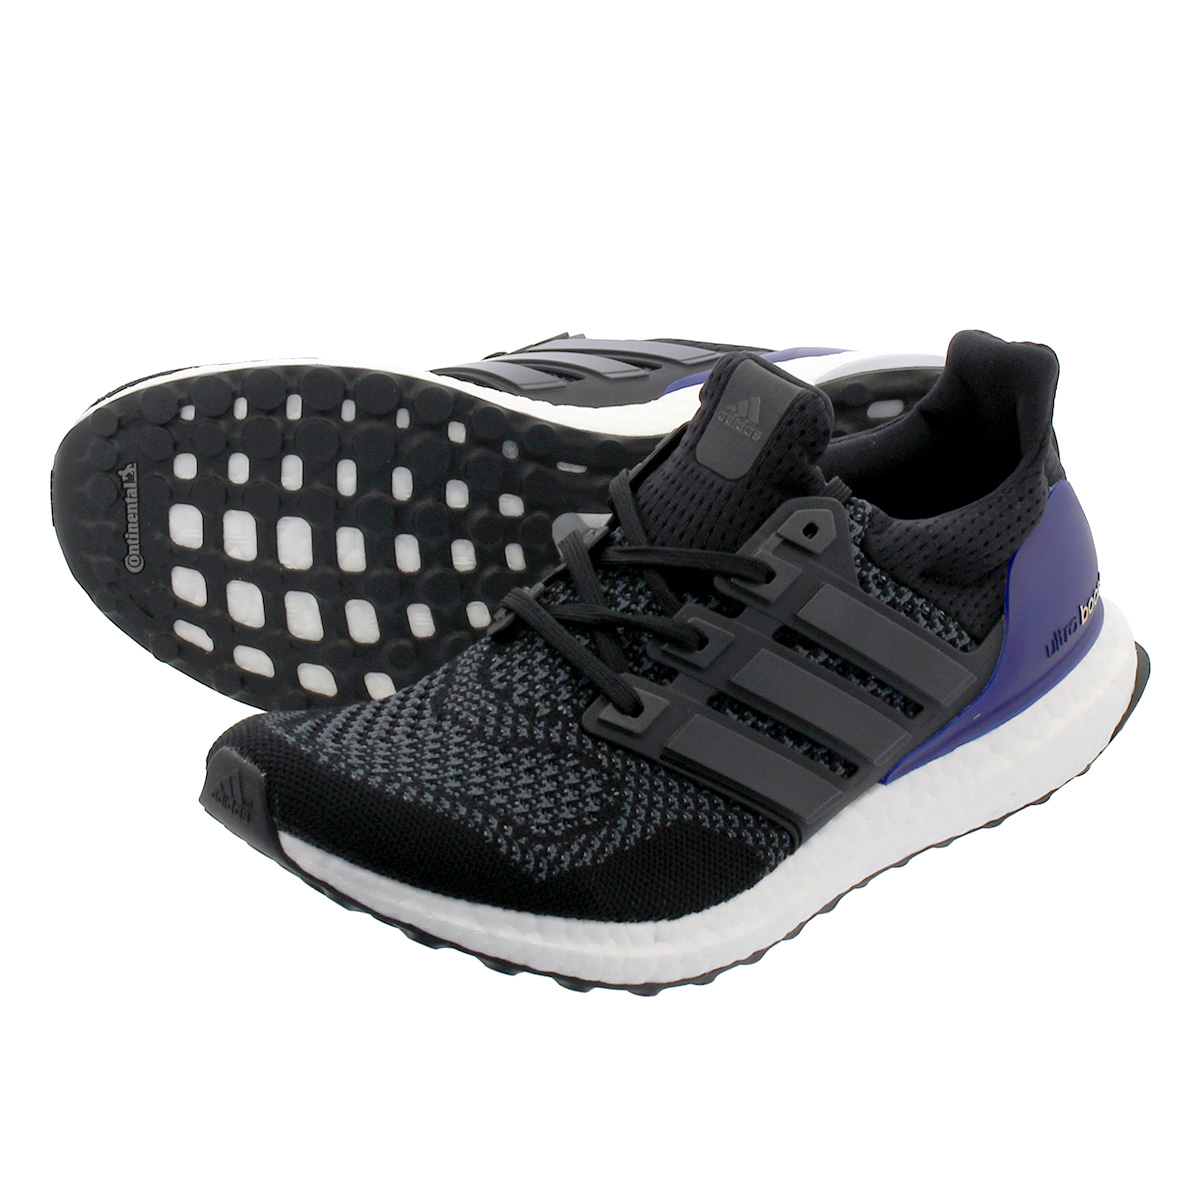 reputable site 5d1bb dd2be adidas ULTRA BOOST Adidas ultra boost CORE BLACK/CORE BLACK/GOLD MET g28319